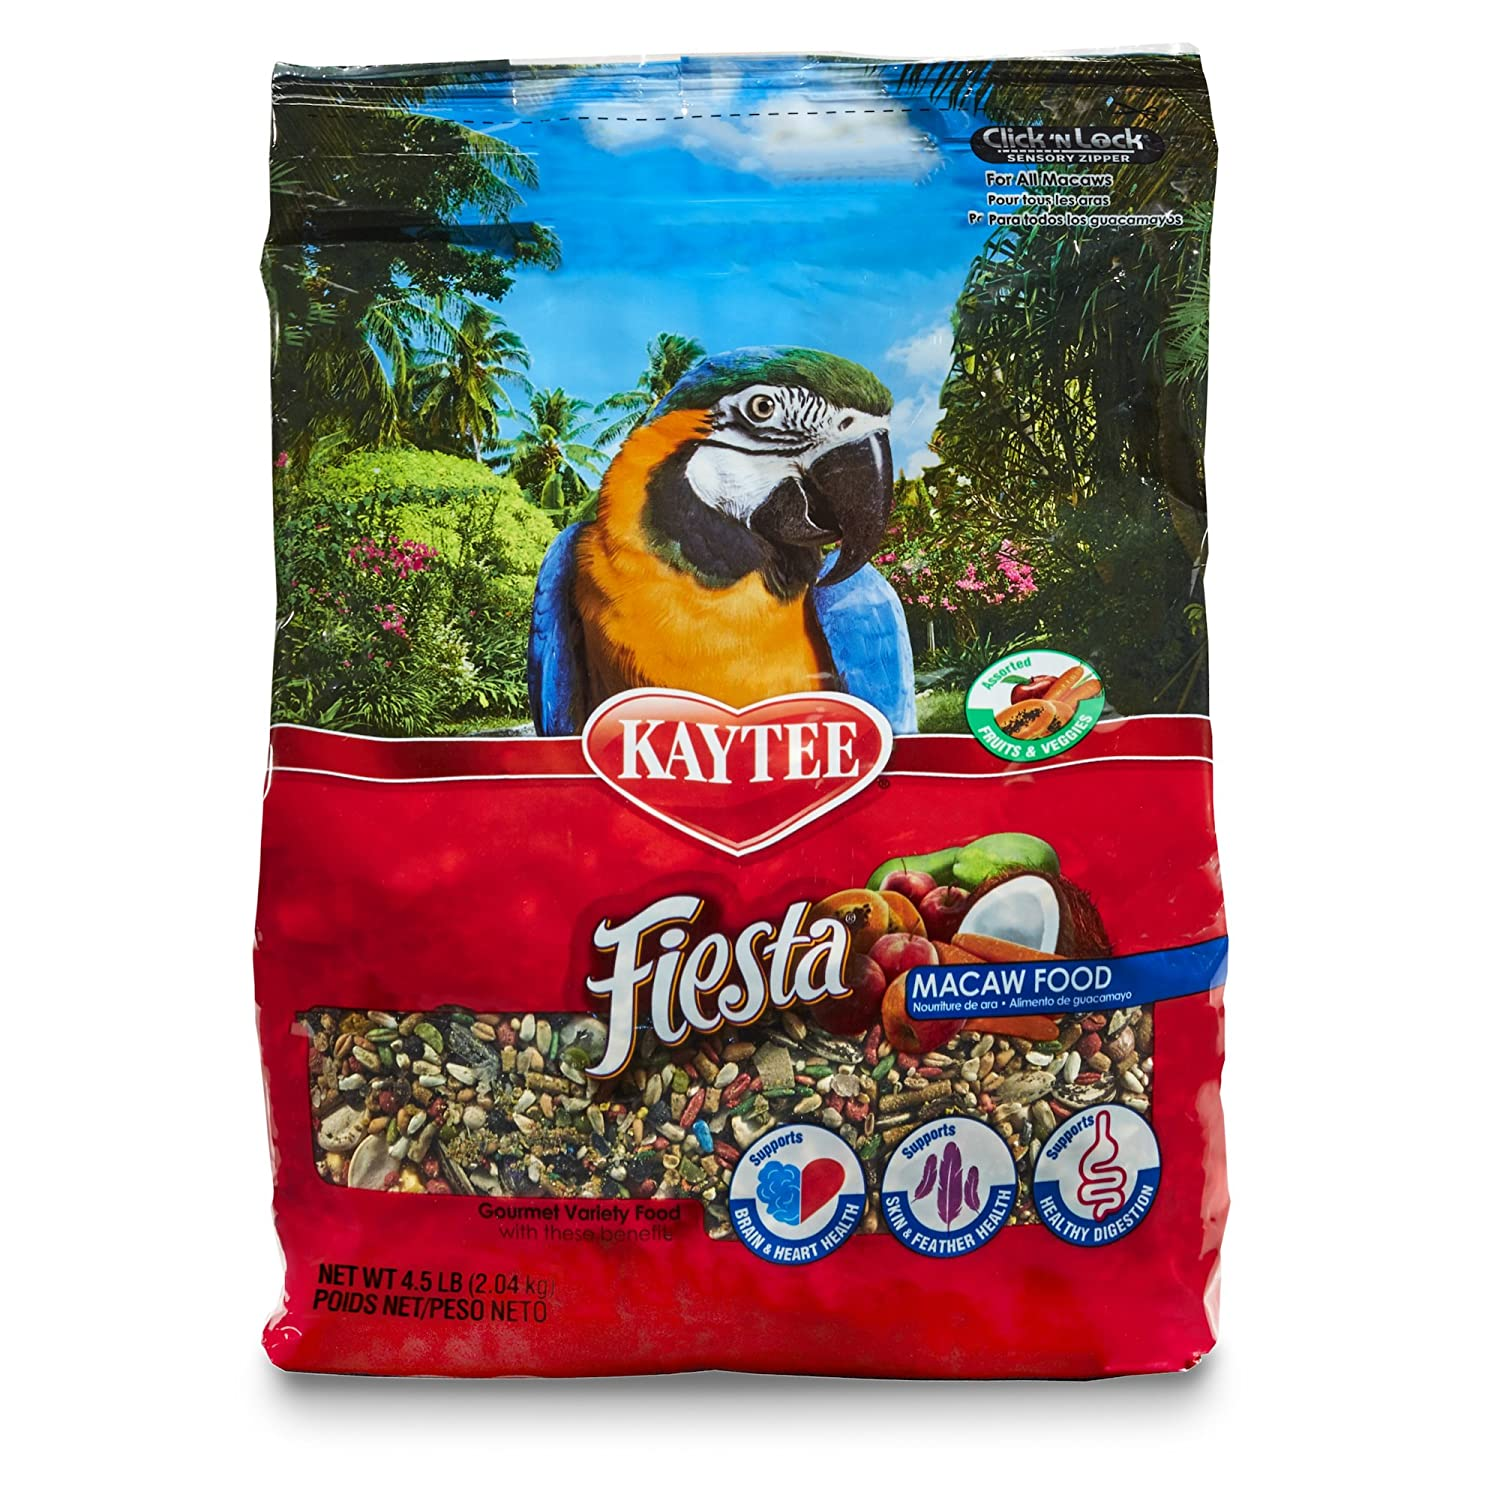 Kaytee Fiesta Bird Food for Macaws Kaytee Fiesta Macaw Food 4.5 Ib 100032250 subscribe and save^sns